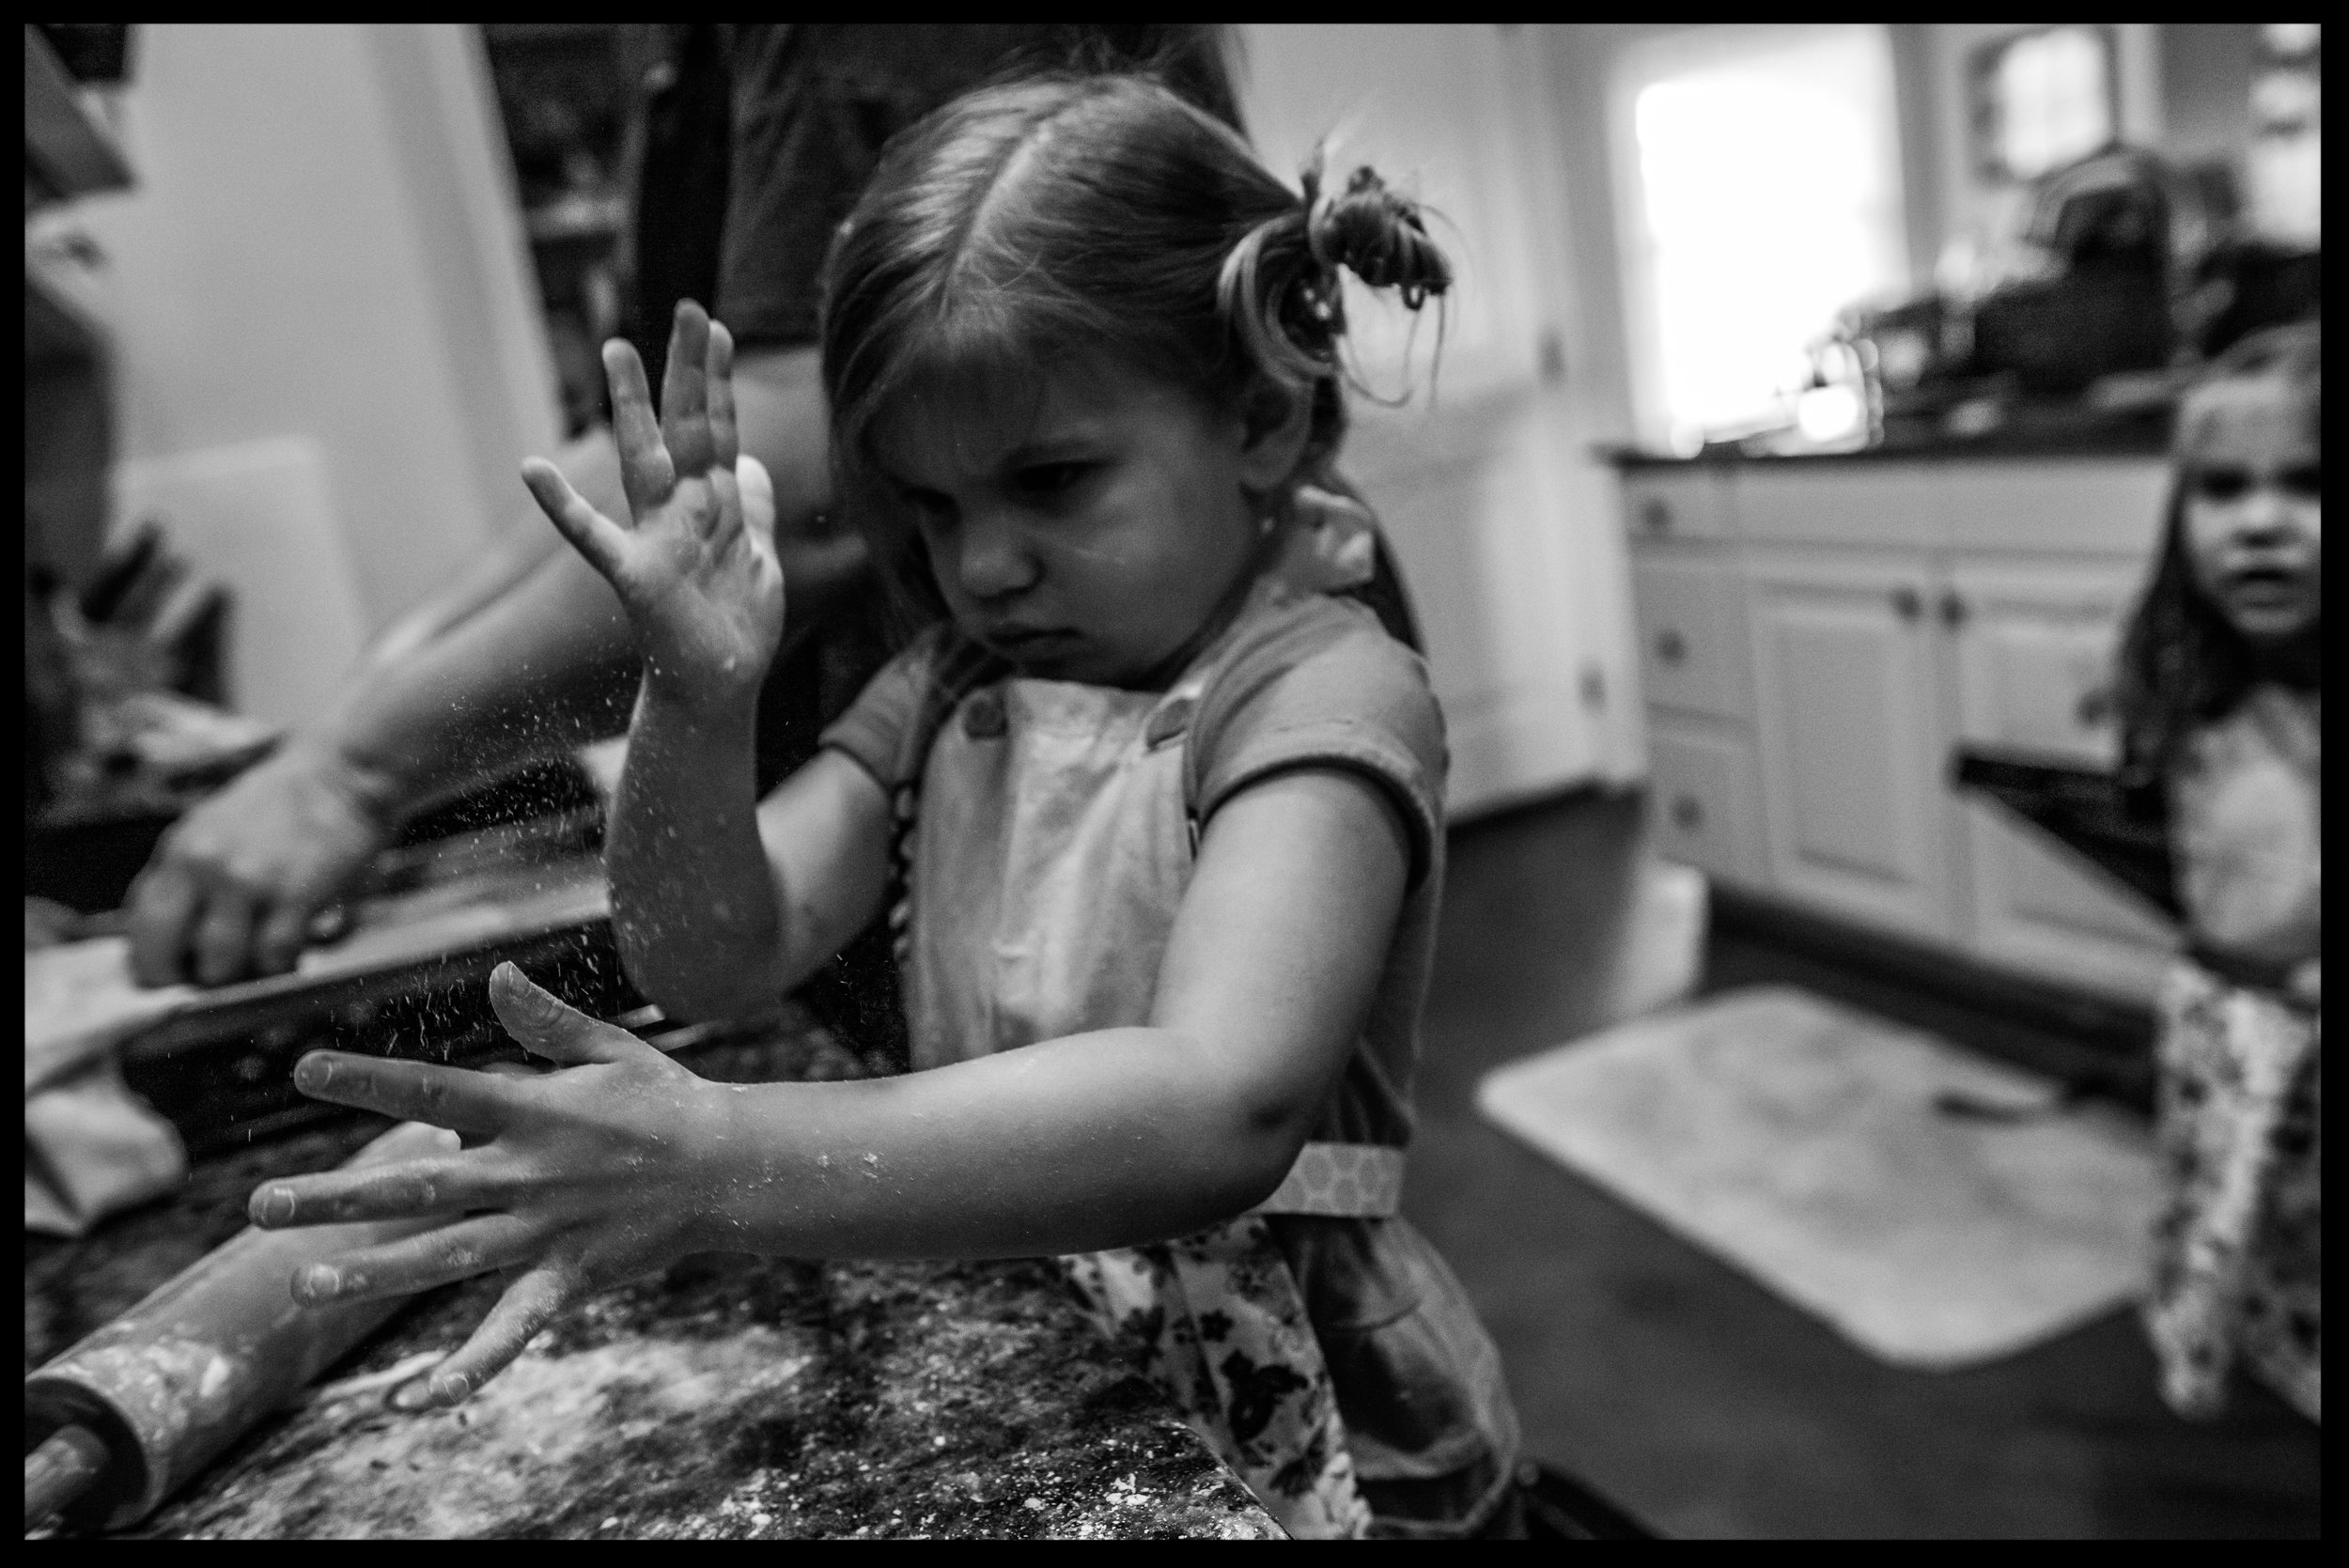 Little girl playing in the flour, black and white